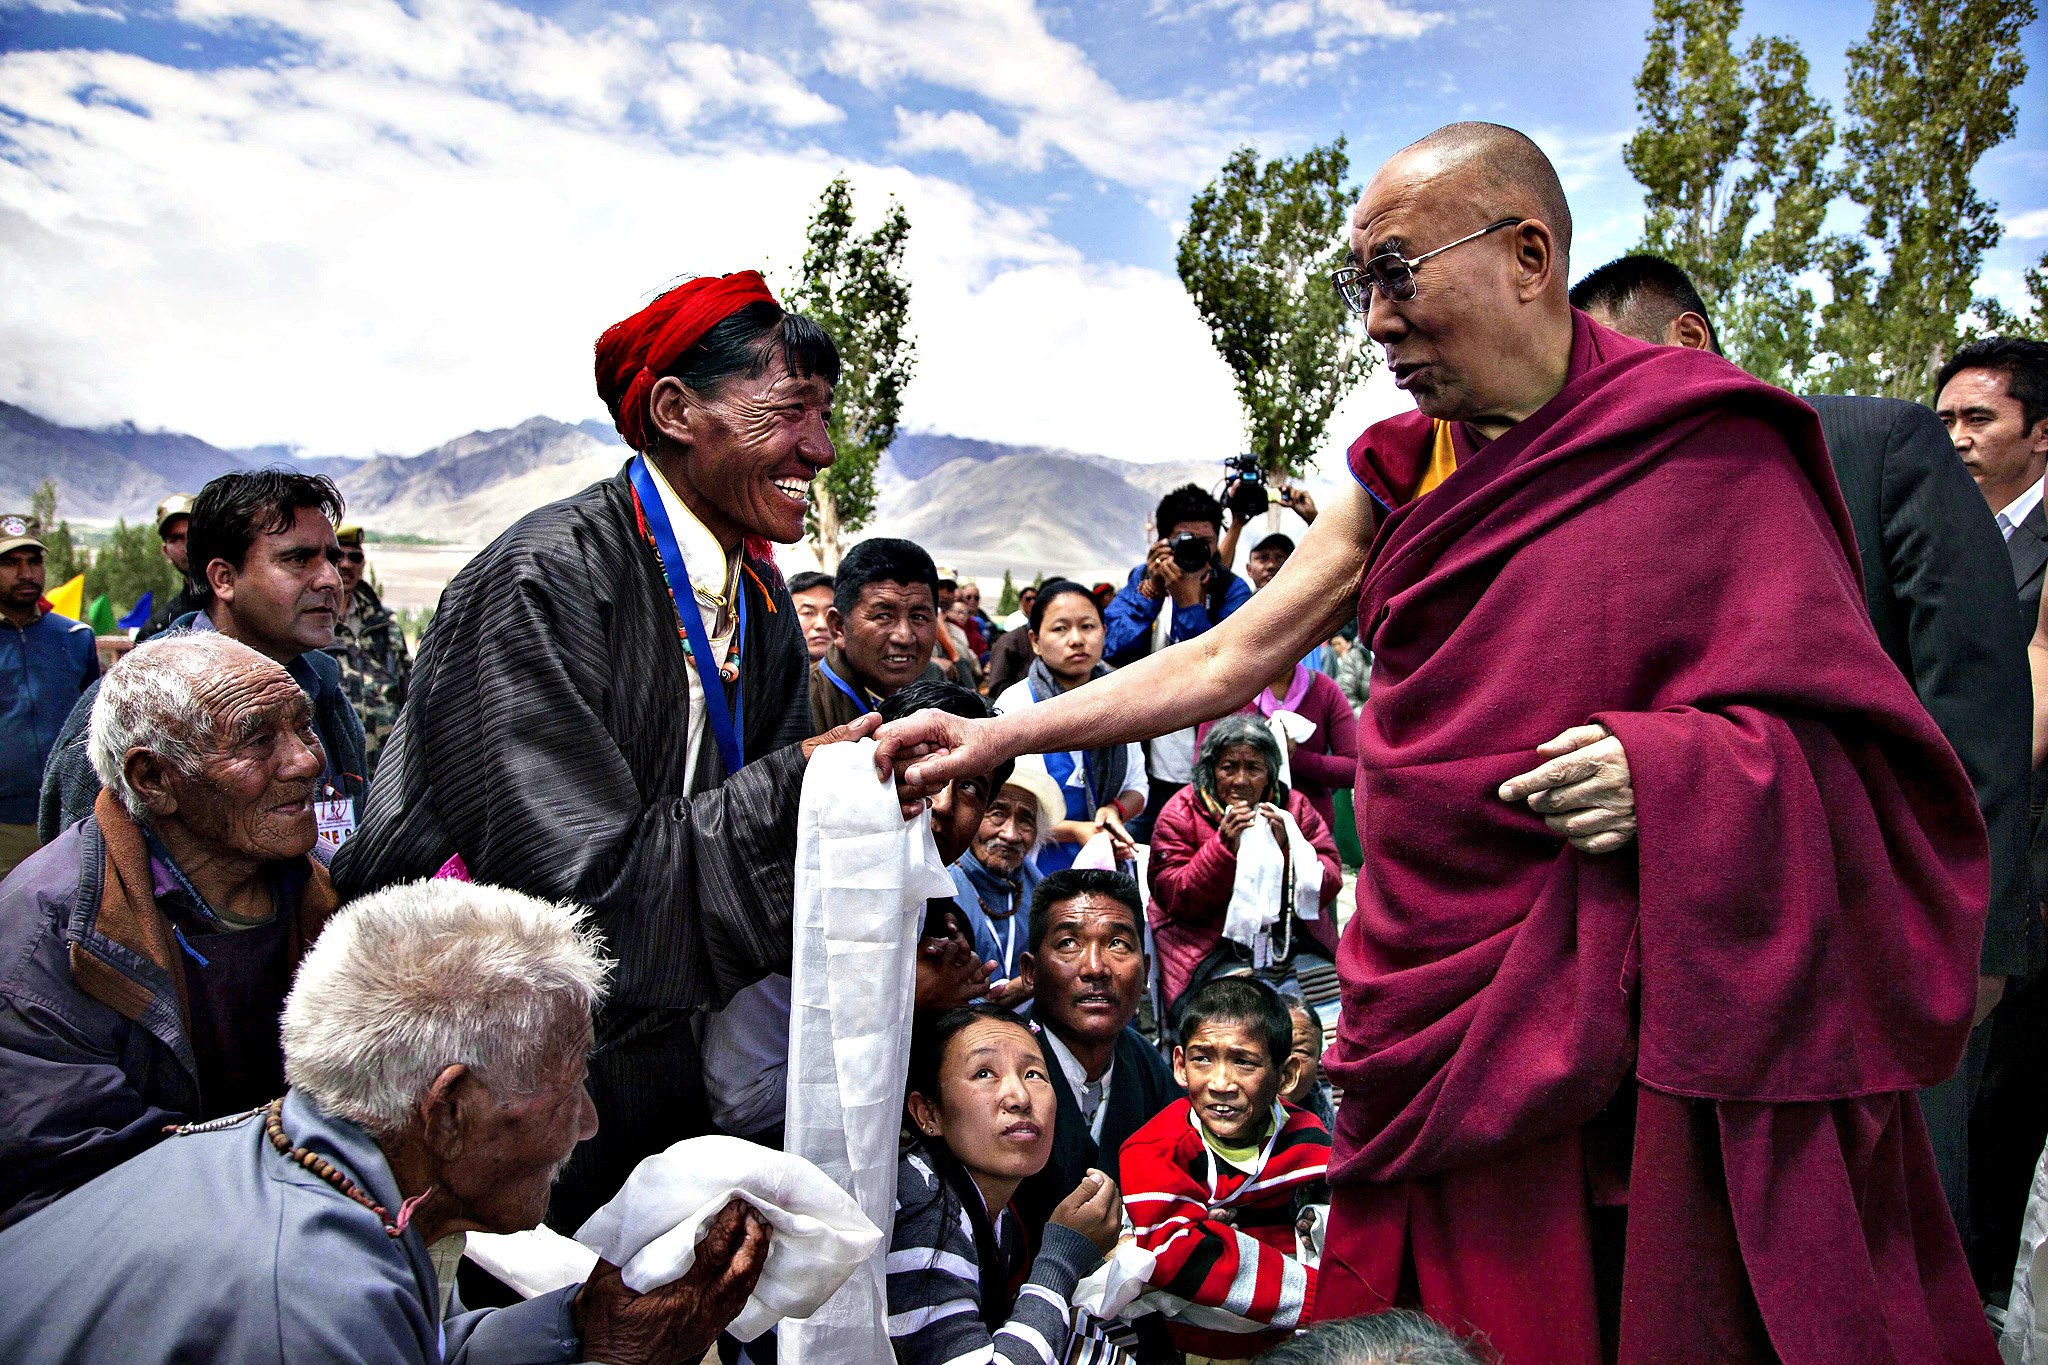 Tibetan spiritual leader the Dalai Lama, talks to a Buddhist devotee as he arrives at the Tibetan children's village school near Leh, India, Thursday, July 3, 2014. Buddhist devotees from across the globe are expected to arrive in this Himalayan region of Ladakh to attend the  Kalachakra  or Wheel of Time initiations by the Dalai Lama beginning Thursday.